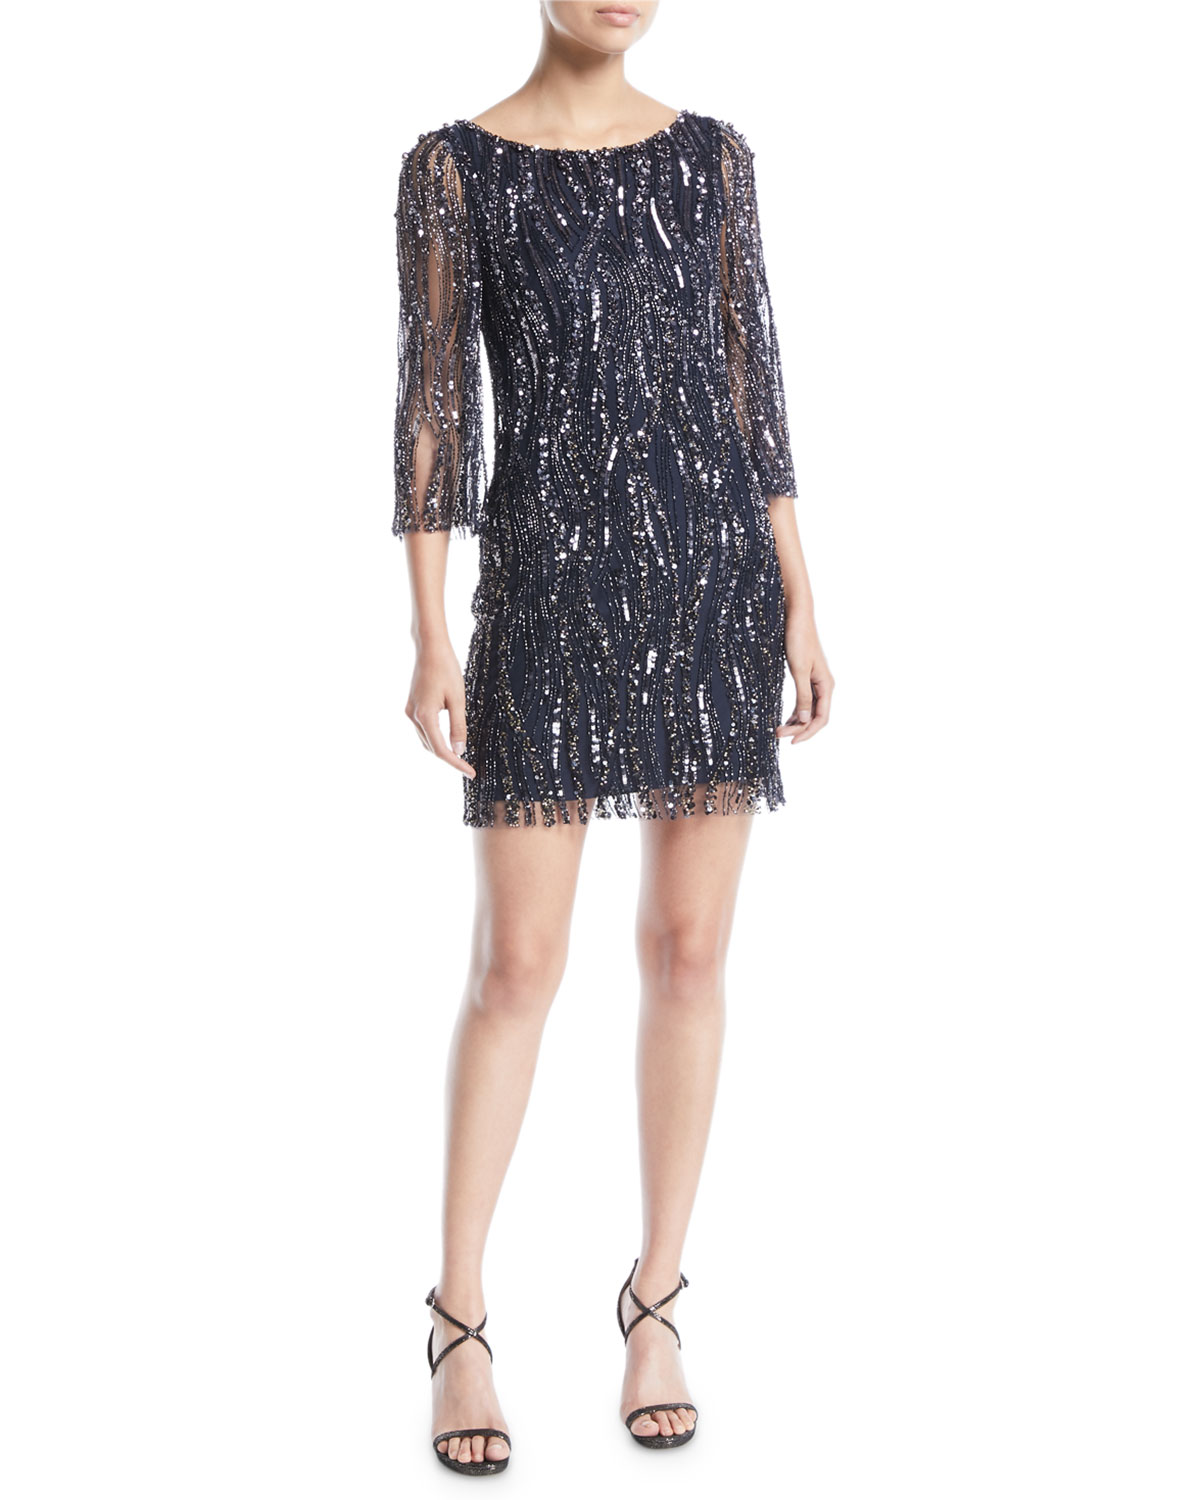 Round-Neck 3/4-Sleeve Beaded Cocktail Dress